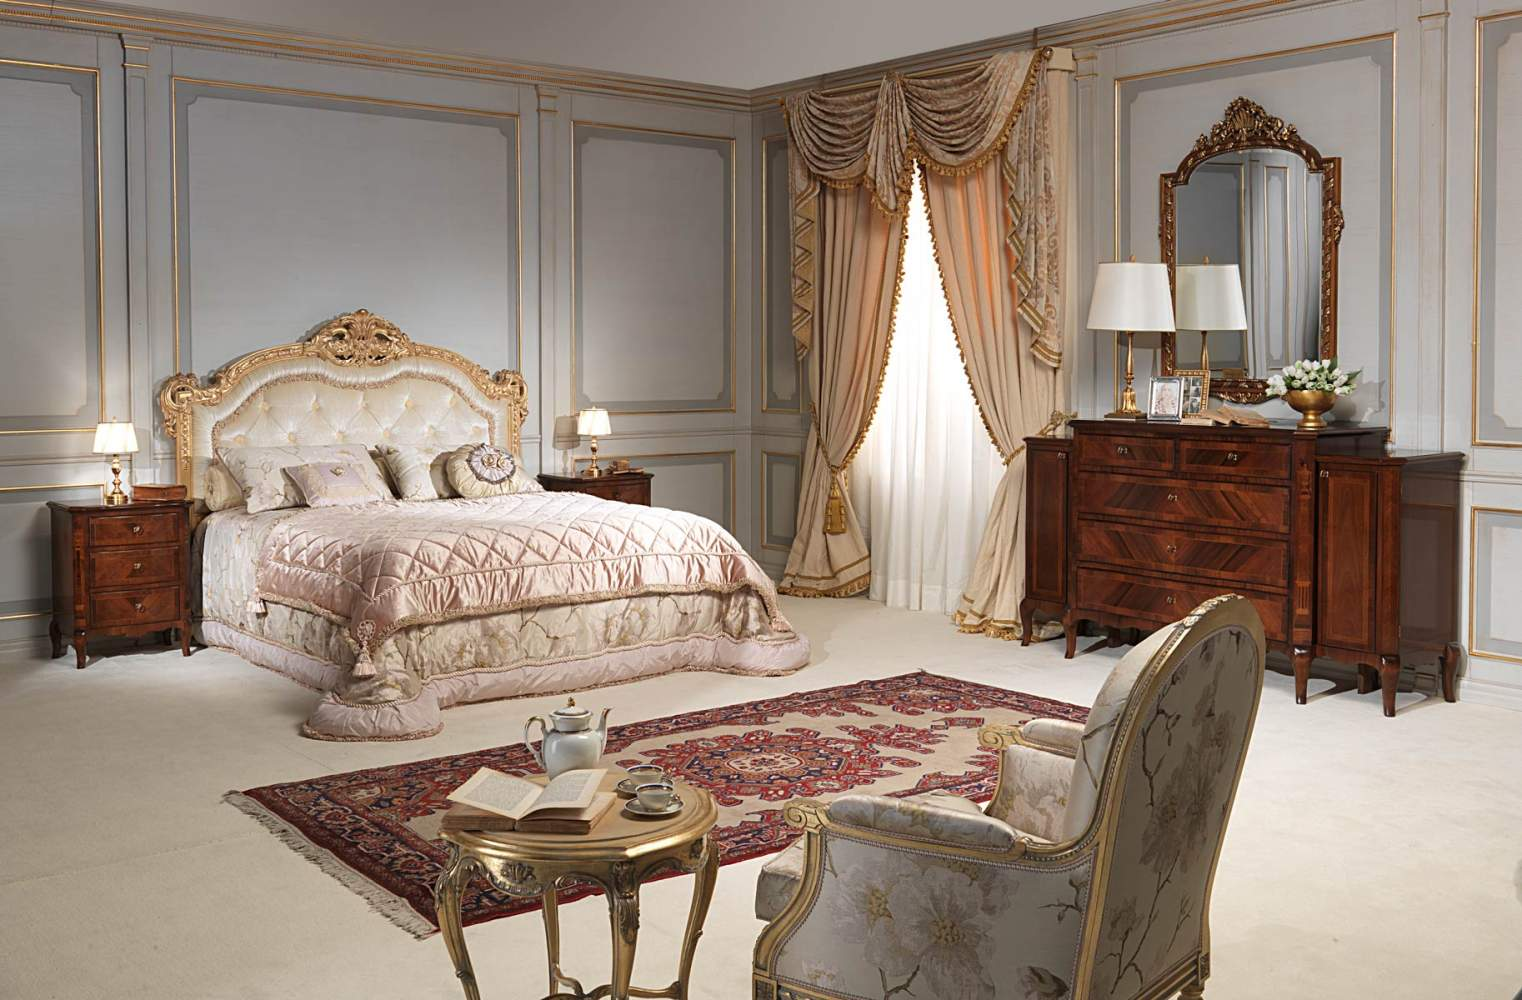 Classic french bedroom 19th century style vimercati for Classic french bedroom